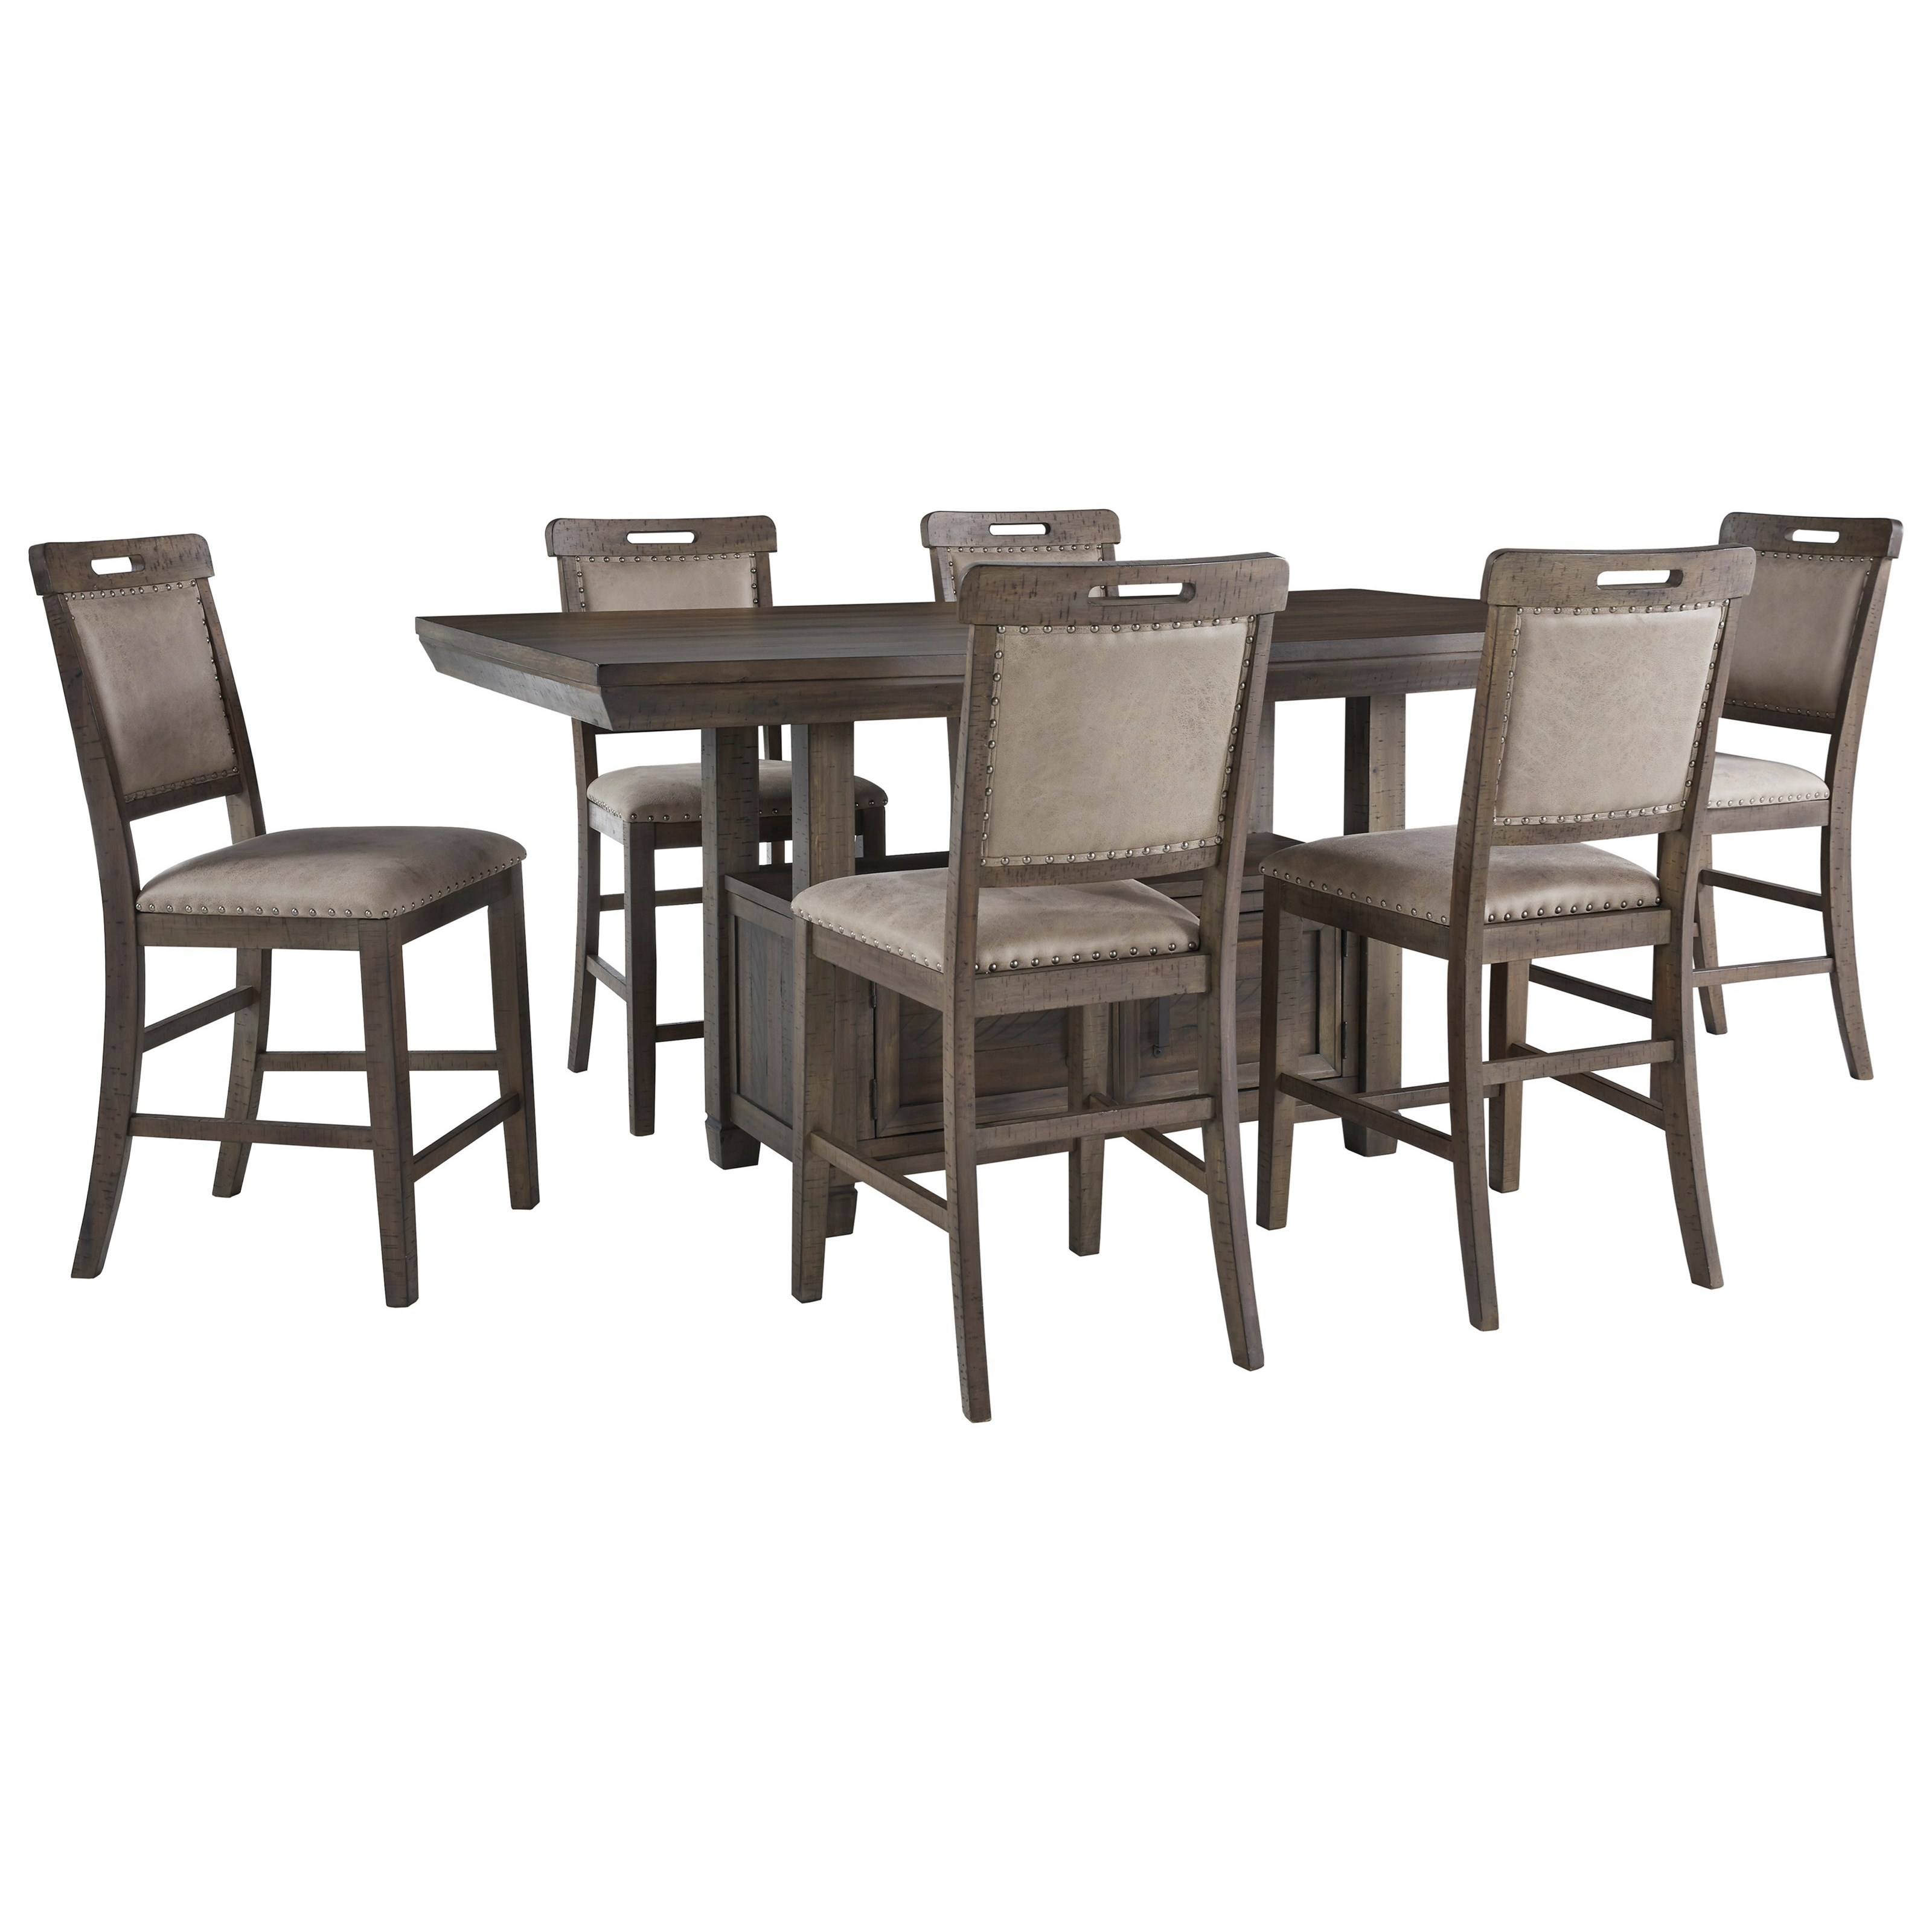 Johurst 7-Piece Counter Height Dining Set by Benchcraft at Beds N Stuff